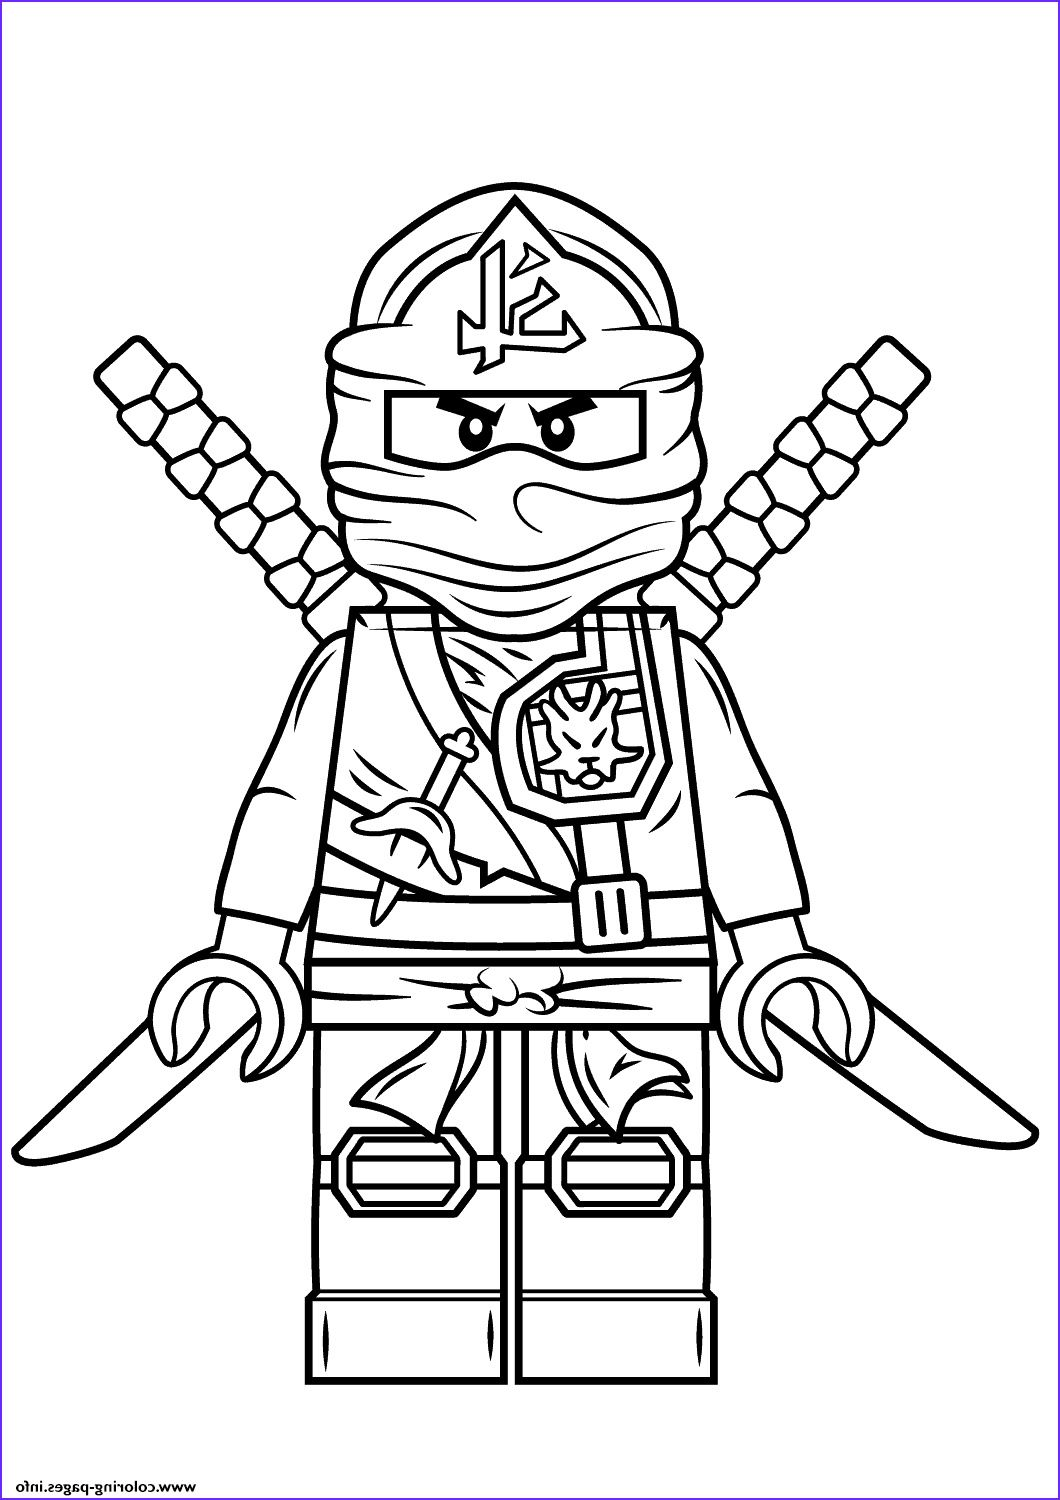 Print Lego Ninjago Green Ninja Coloring Pages Lego Coloring Pages Ninjago Coloring Pages Lego Movie Coloring Pages